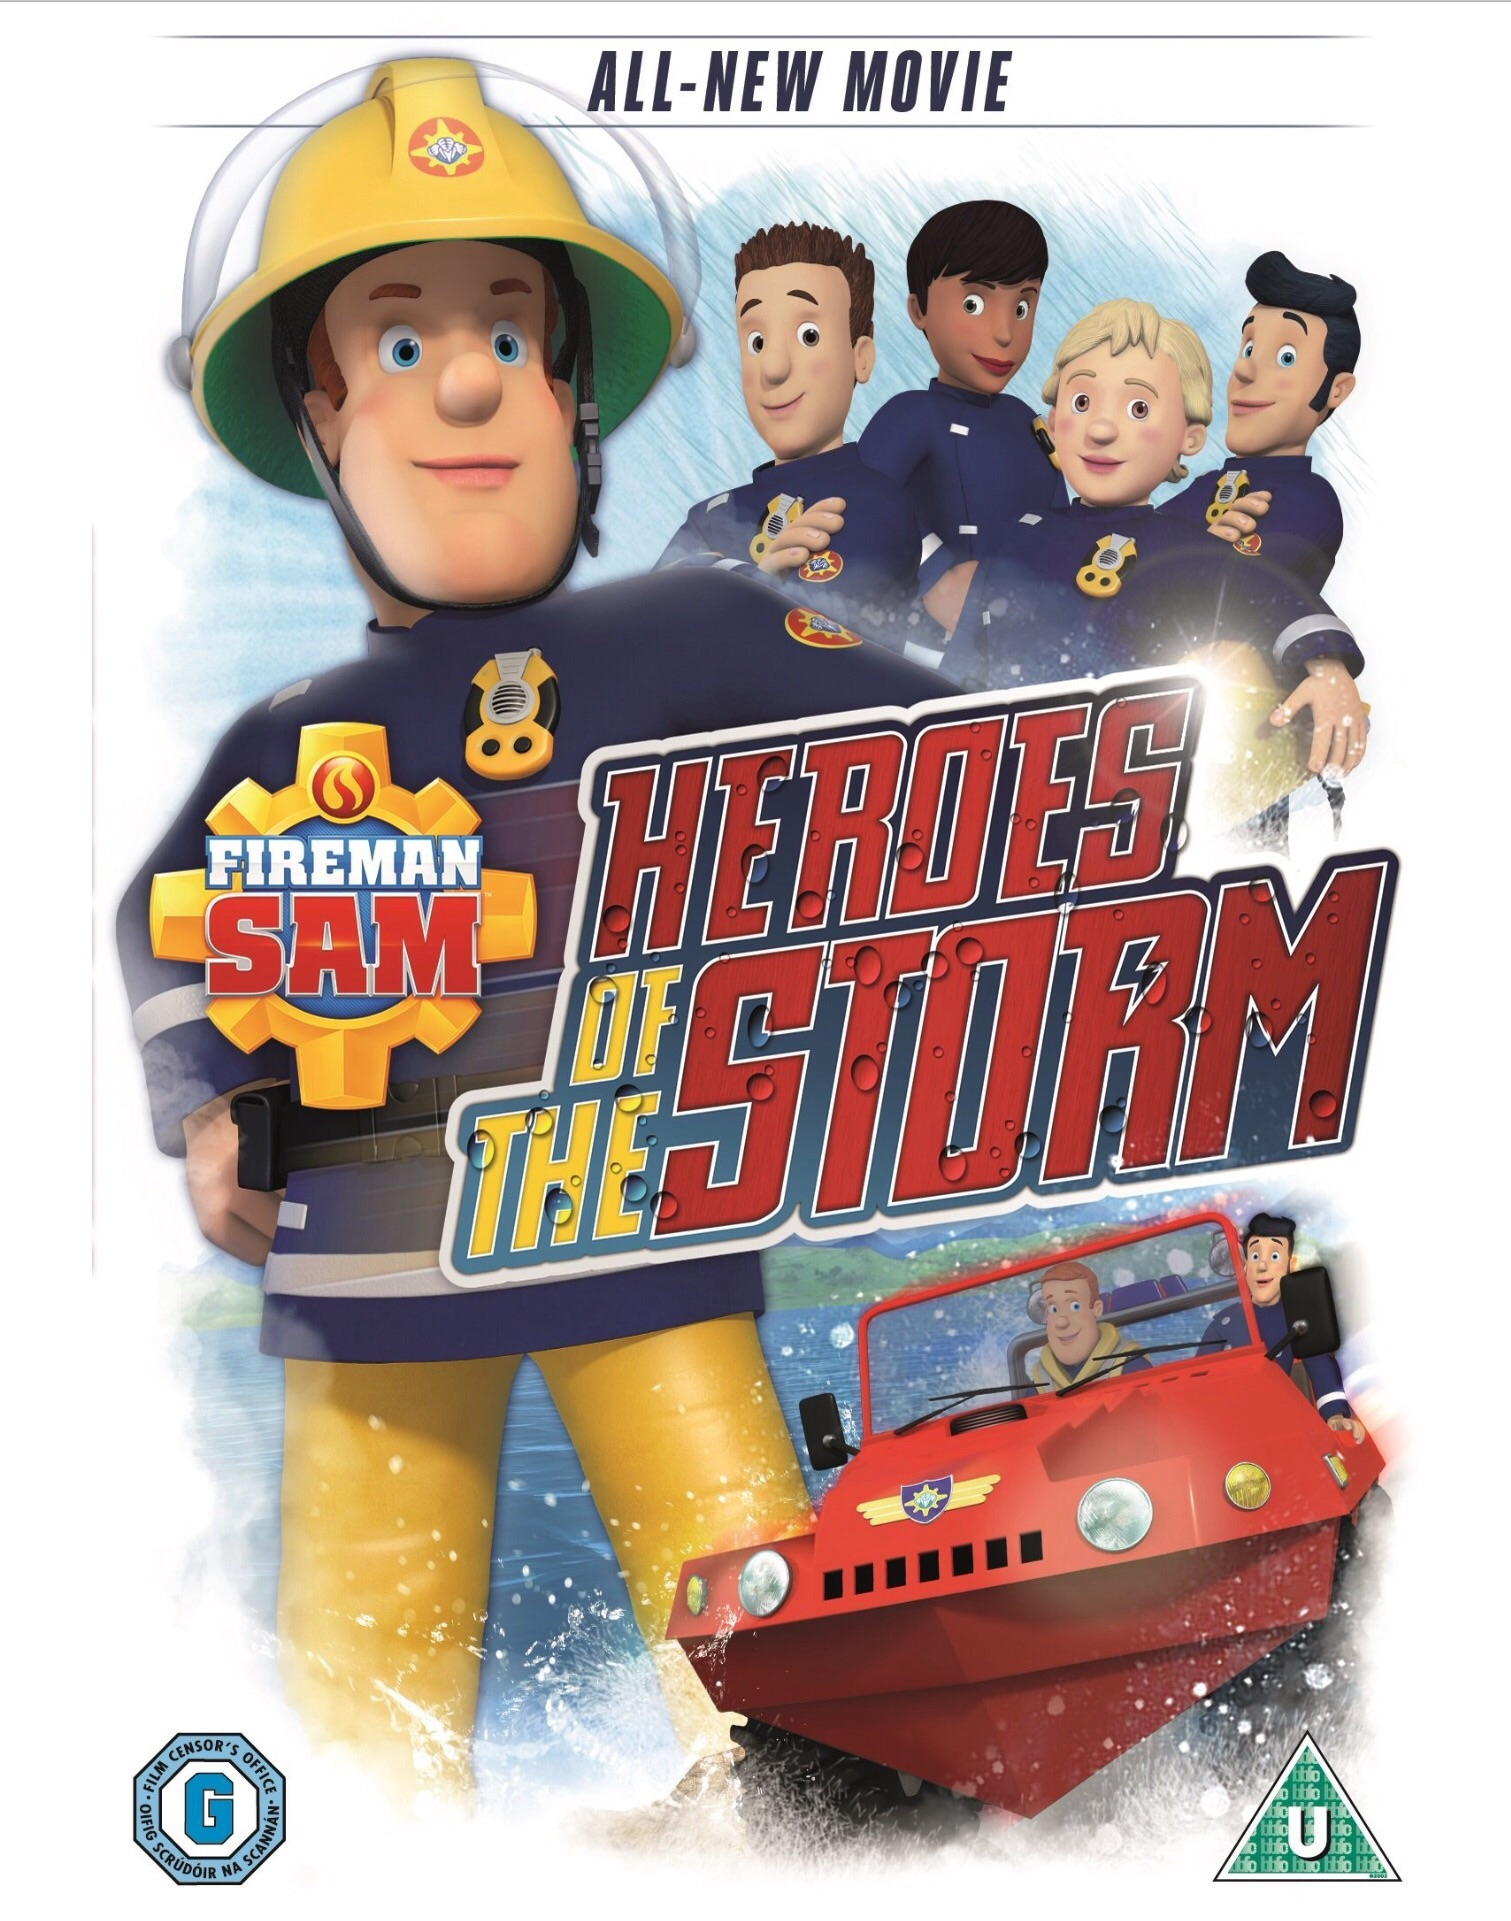 Fireman Sam Heroes Of The Storm (2016)